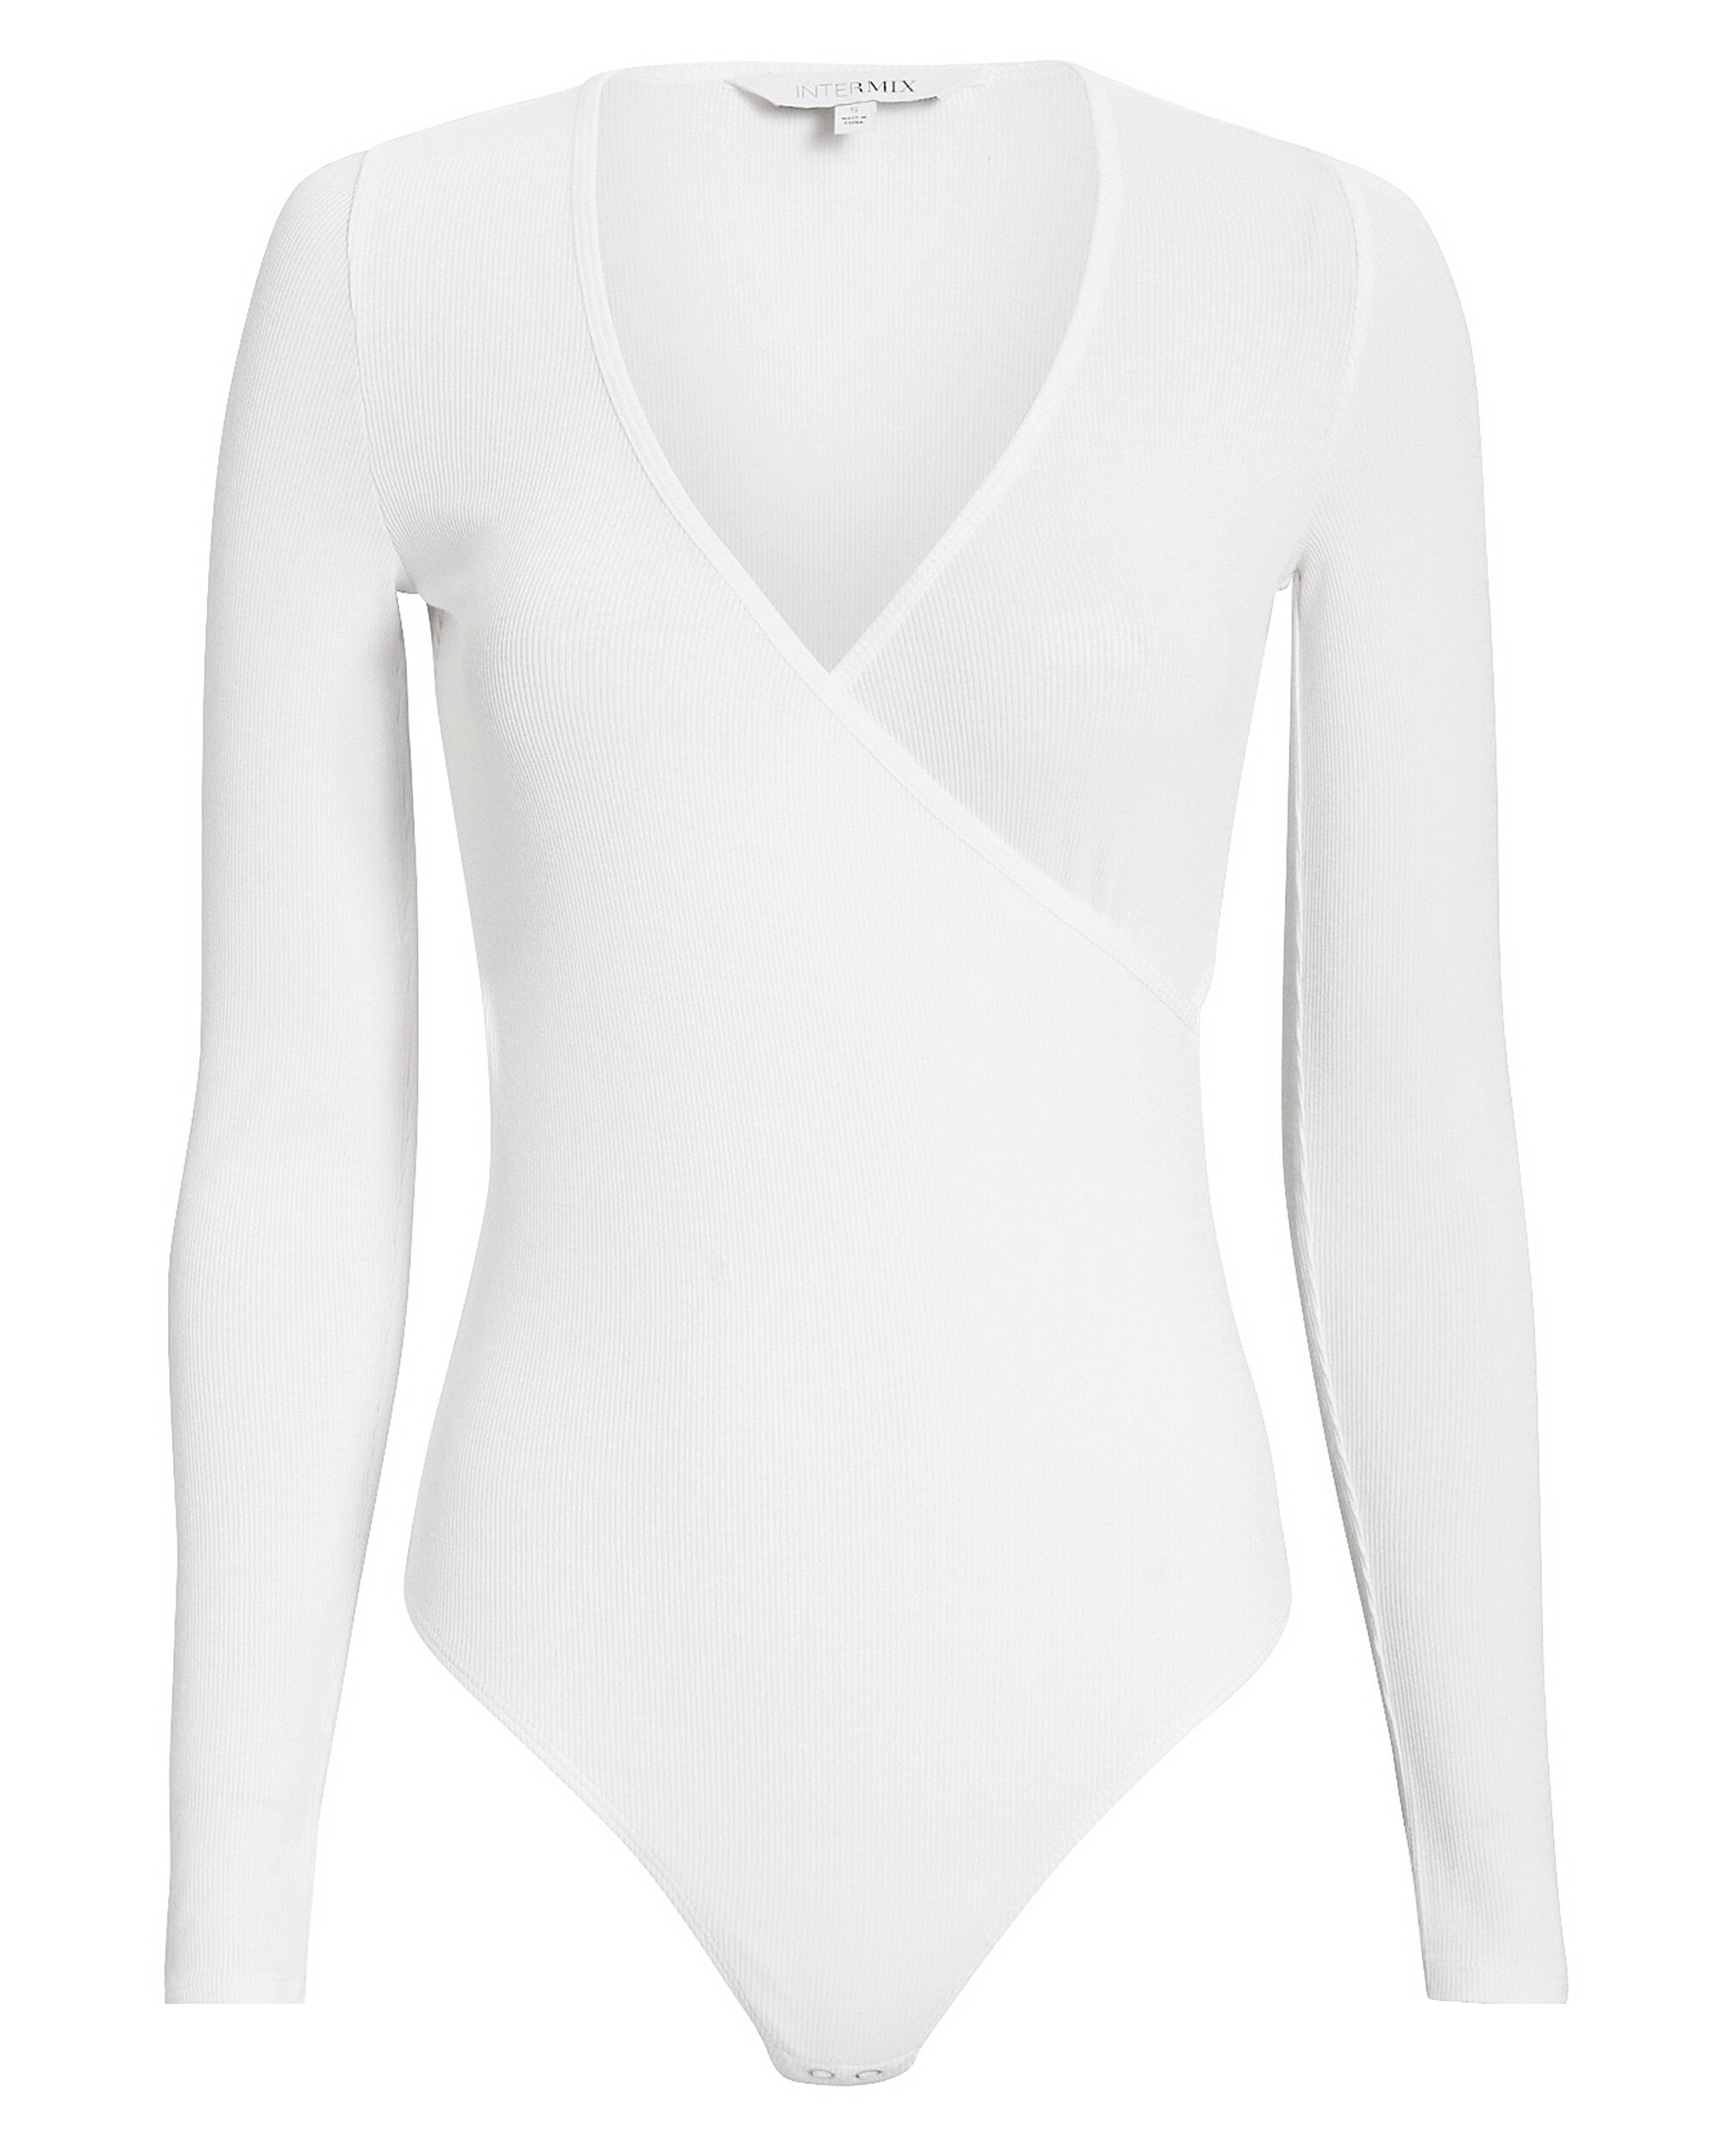 Nevin White Bodysuit, WHITE, hi-res